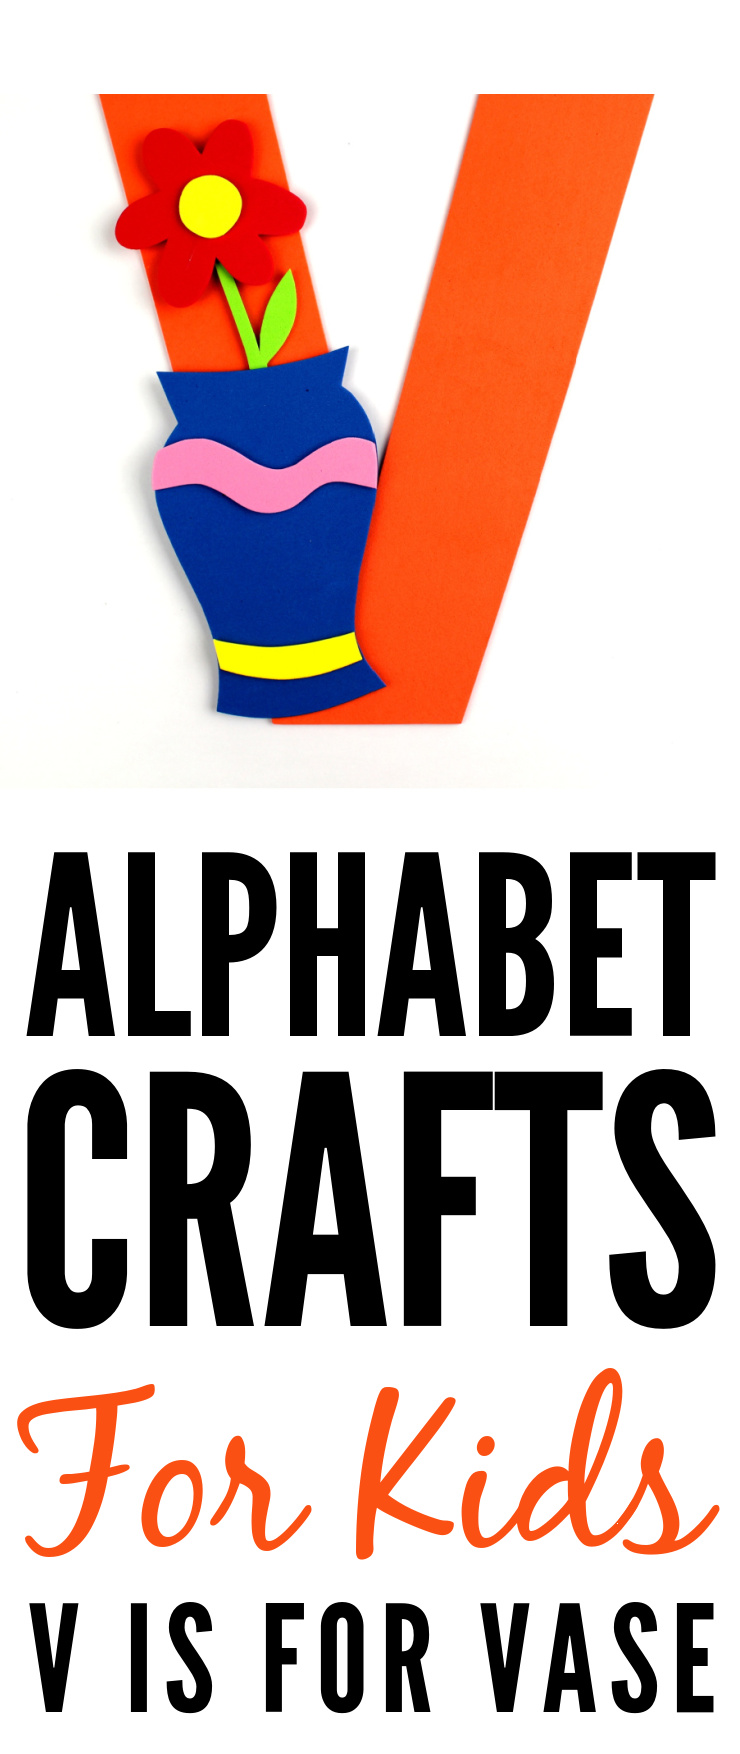 This week in my series of ABCs kids crafts featuring the Alphabet, we are doing a V is for Vase craft. These Alphabet Crafts For Kids are a fun way to introduce your child to the alphabet.